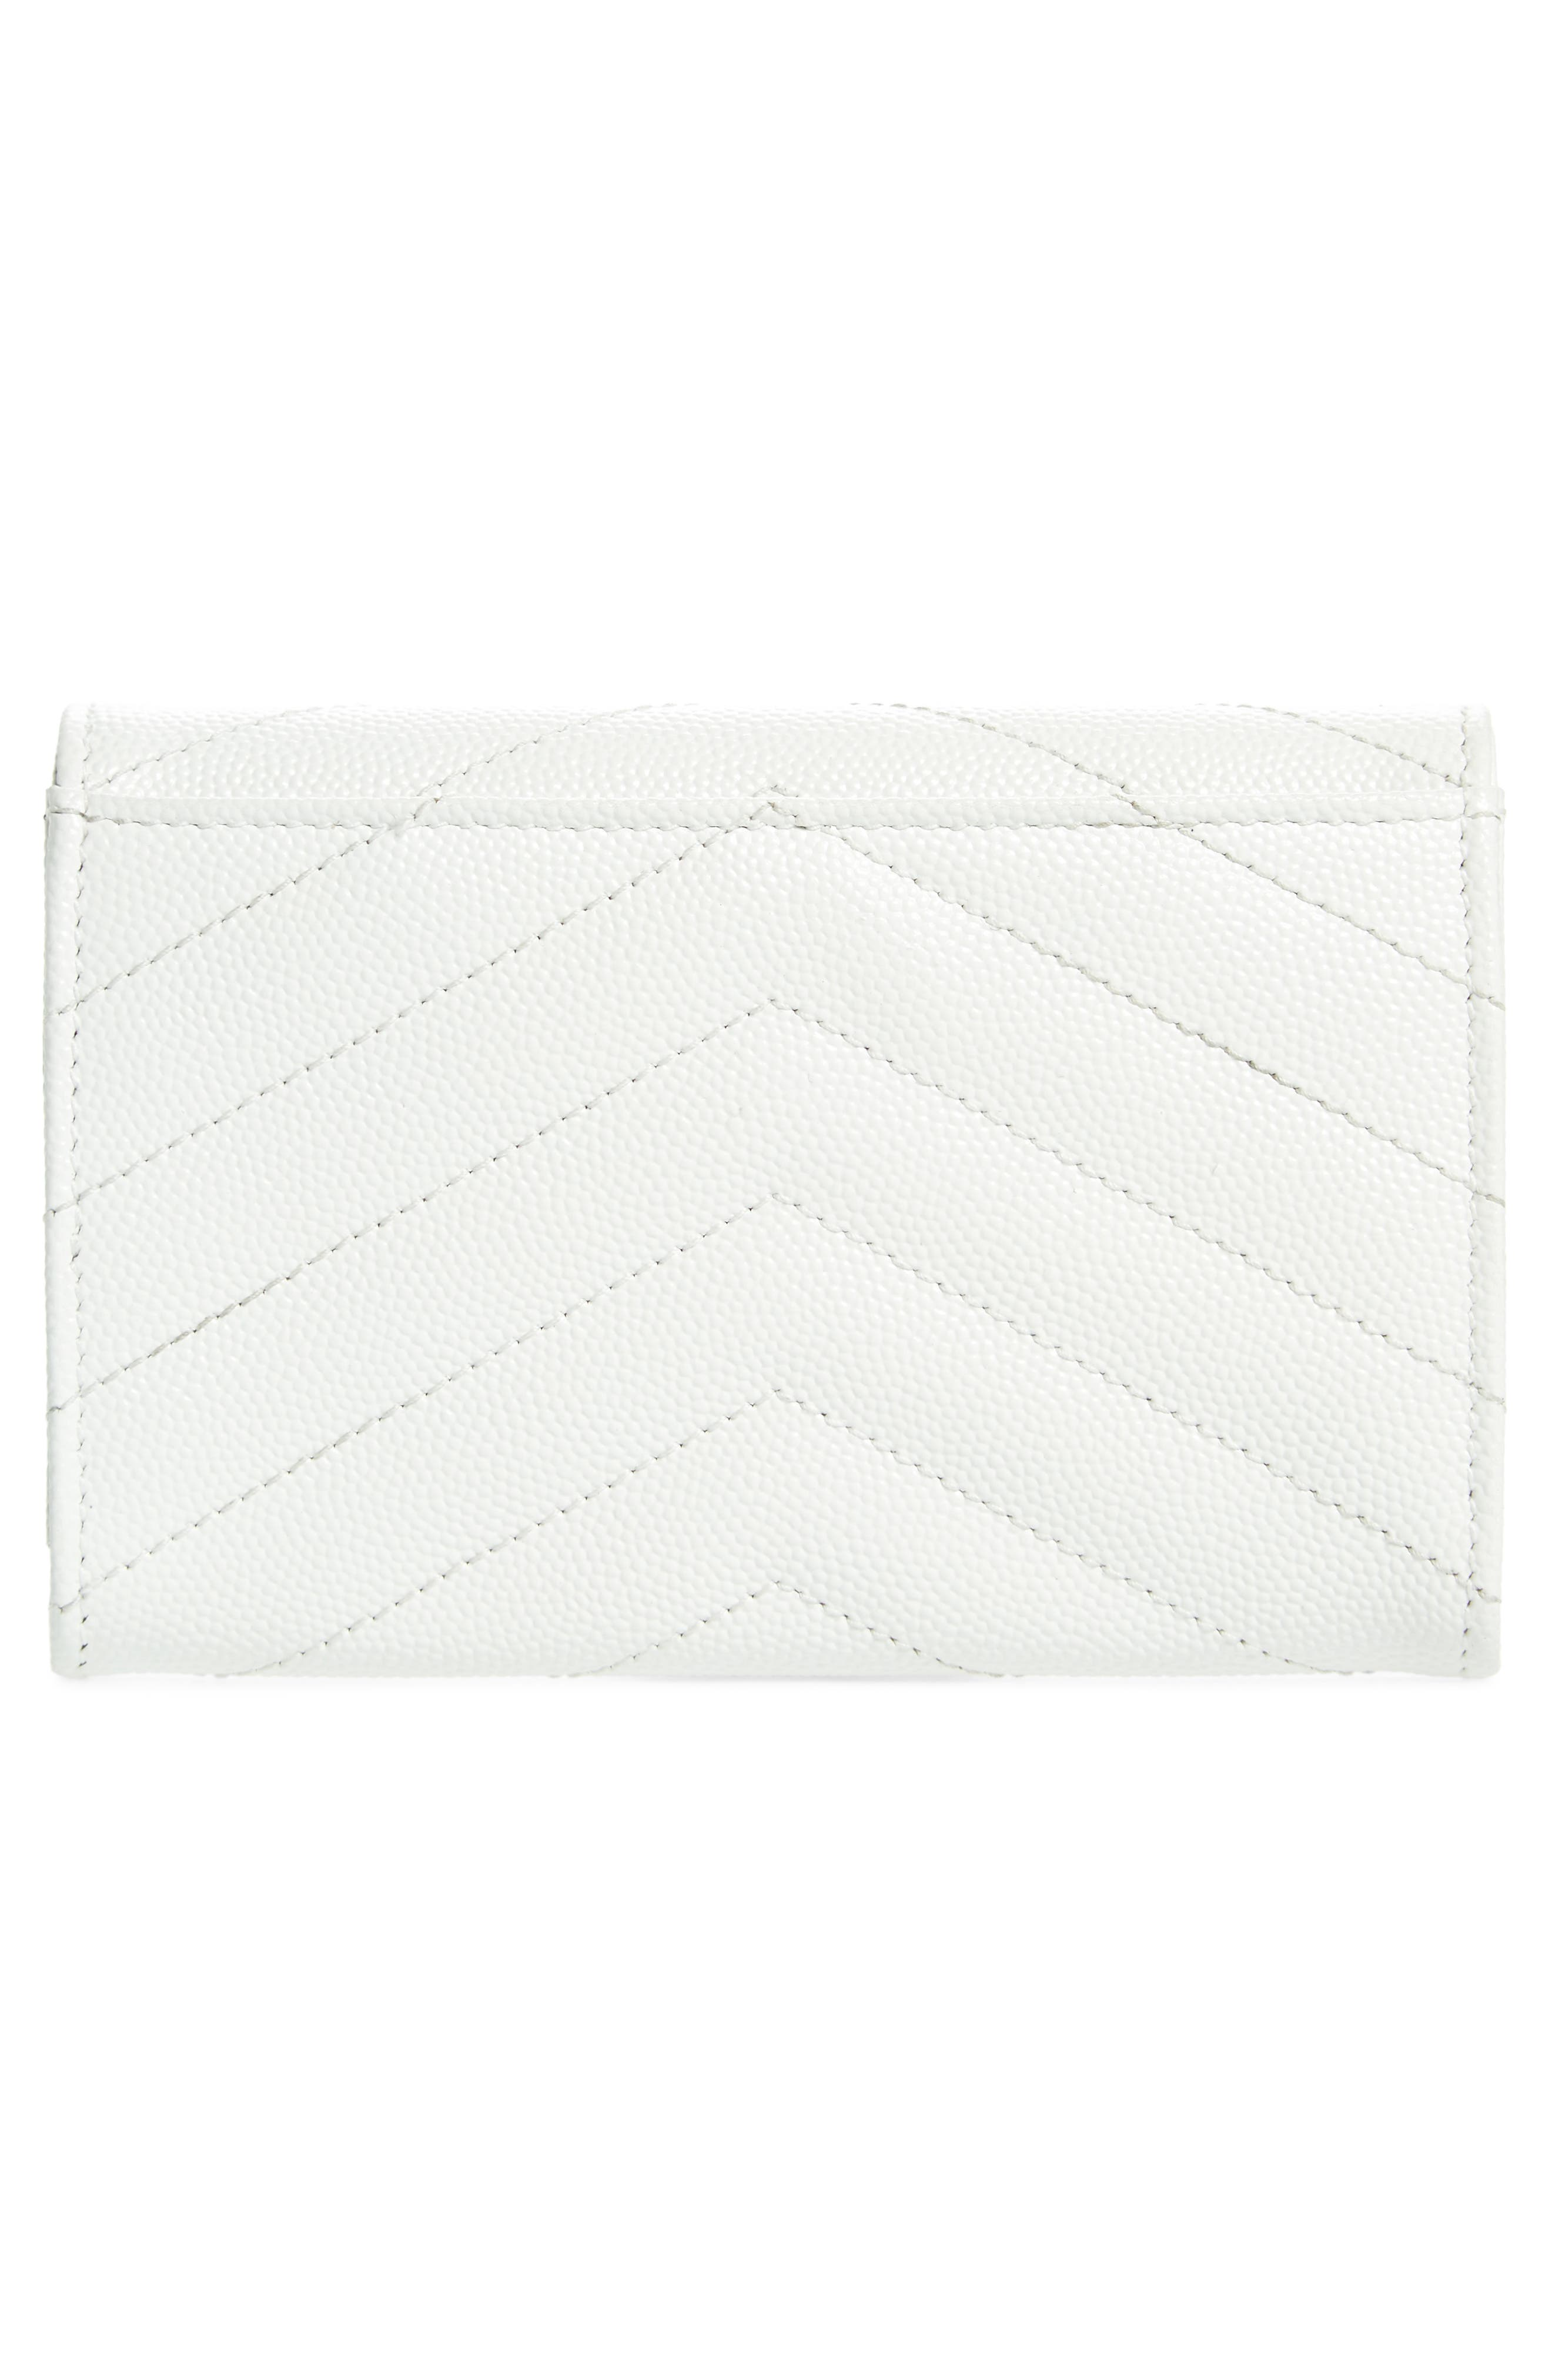 'Small Monogram' Leather French Wallet,                             Alternate thumbnail 4, color,                             Optic White